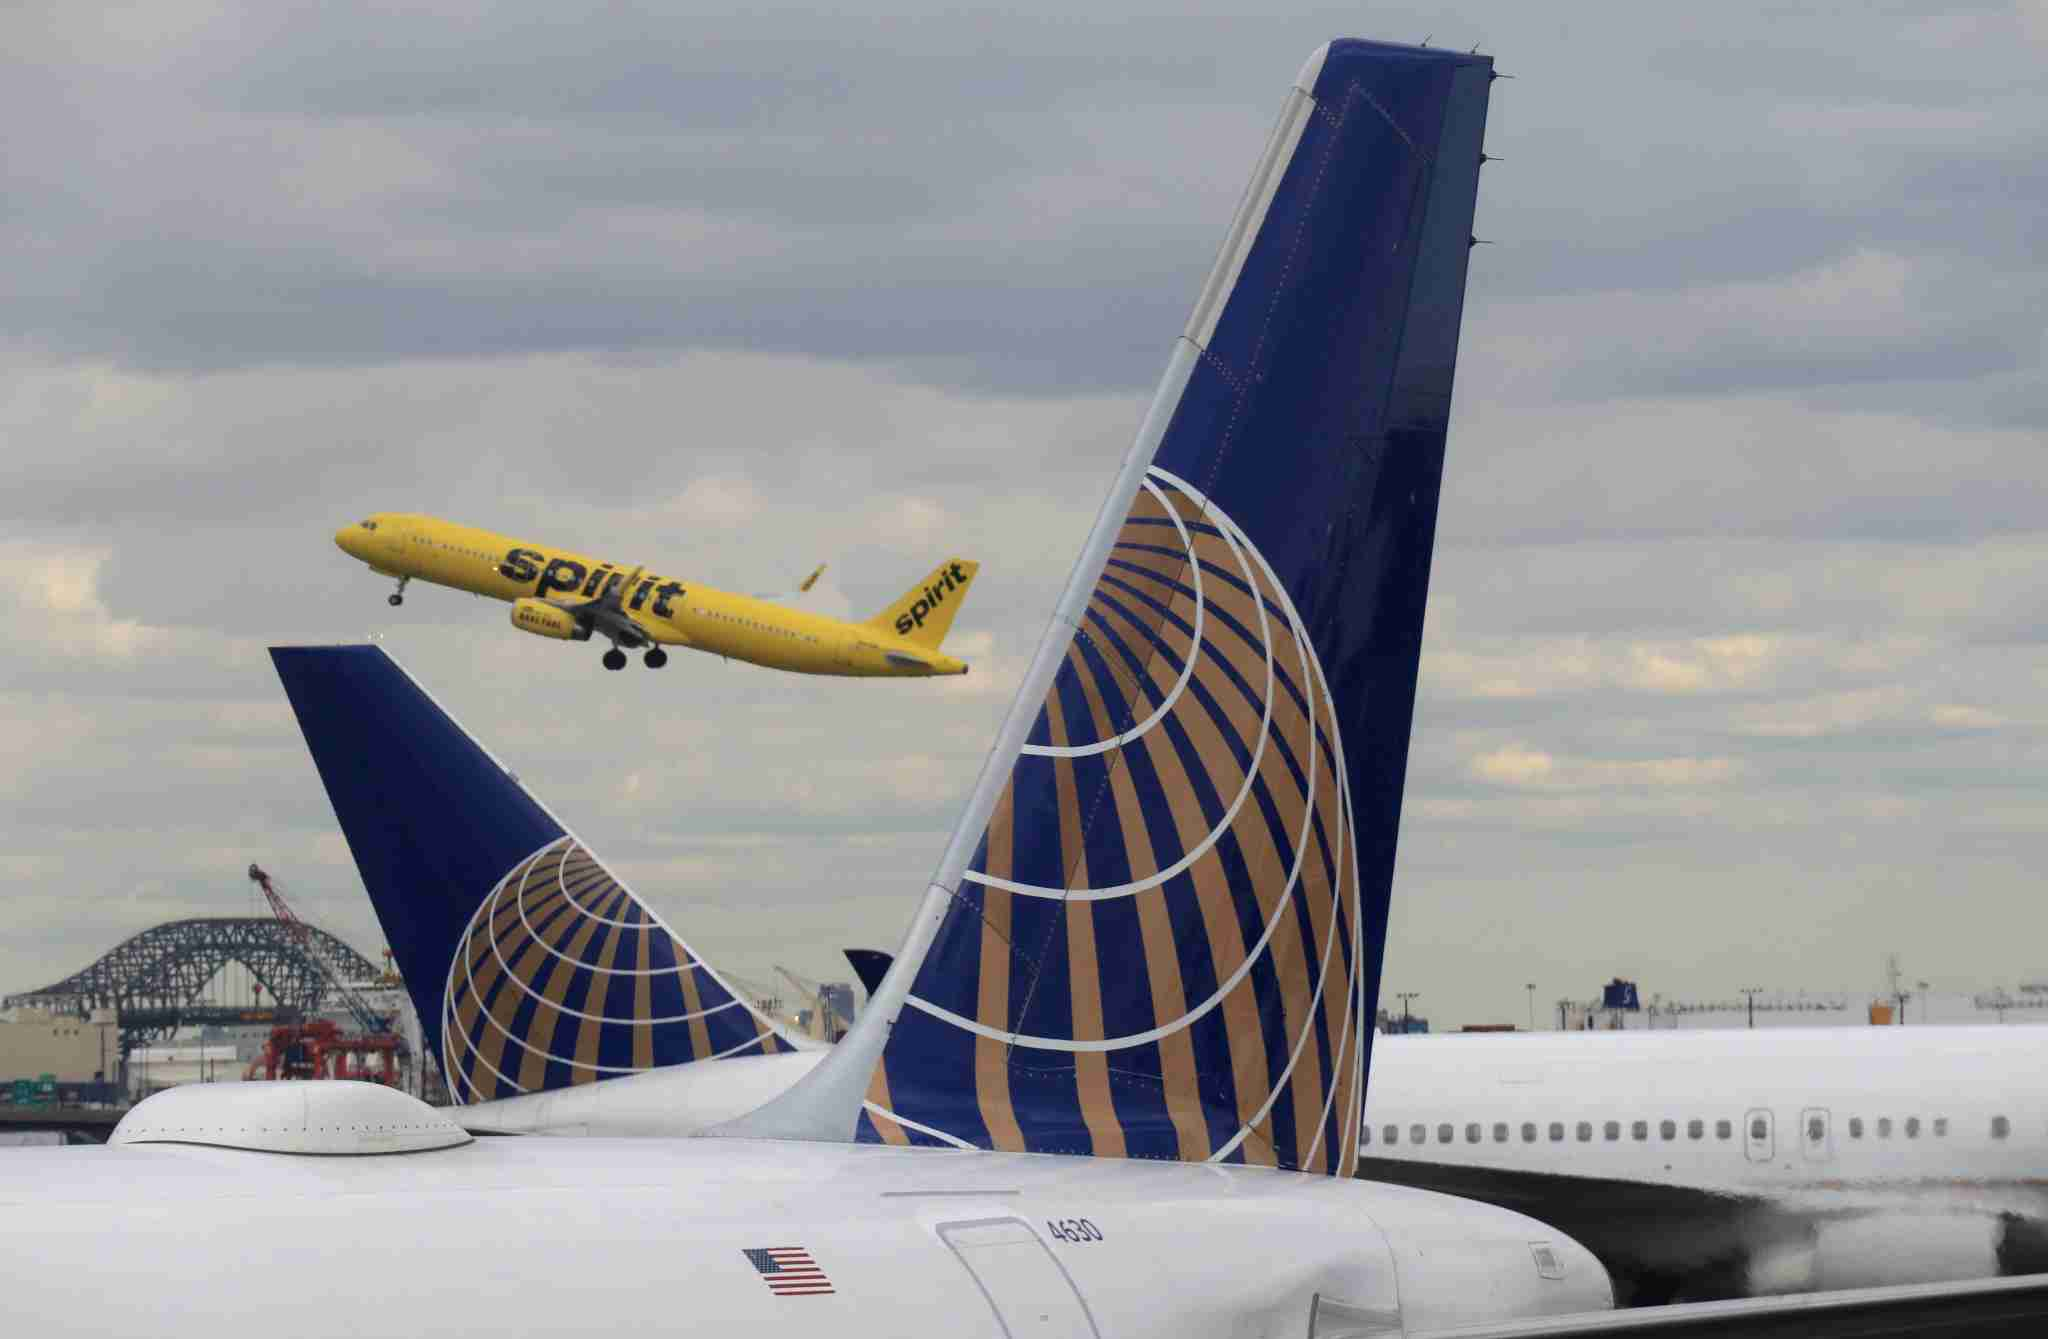 NEWARK, NJ - MARCH 23: A Spirit Airlines jet takes off above two United Airlines airplanes at Newark Liberty Airport on March 23, 2018 in Newark, New Jersey. (Photo by Gary Hershorn/Getty Images)